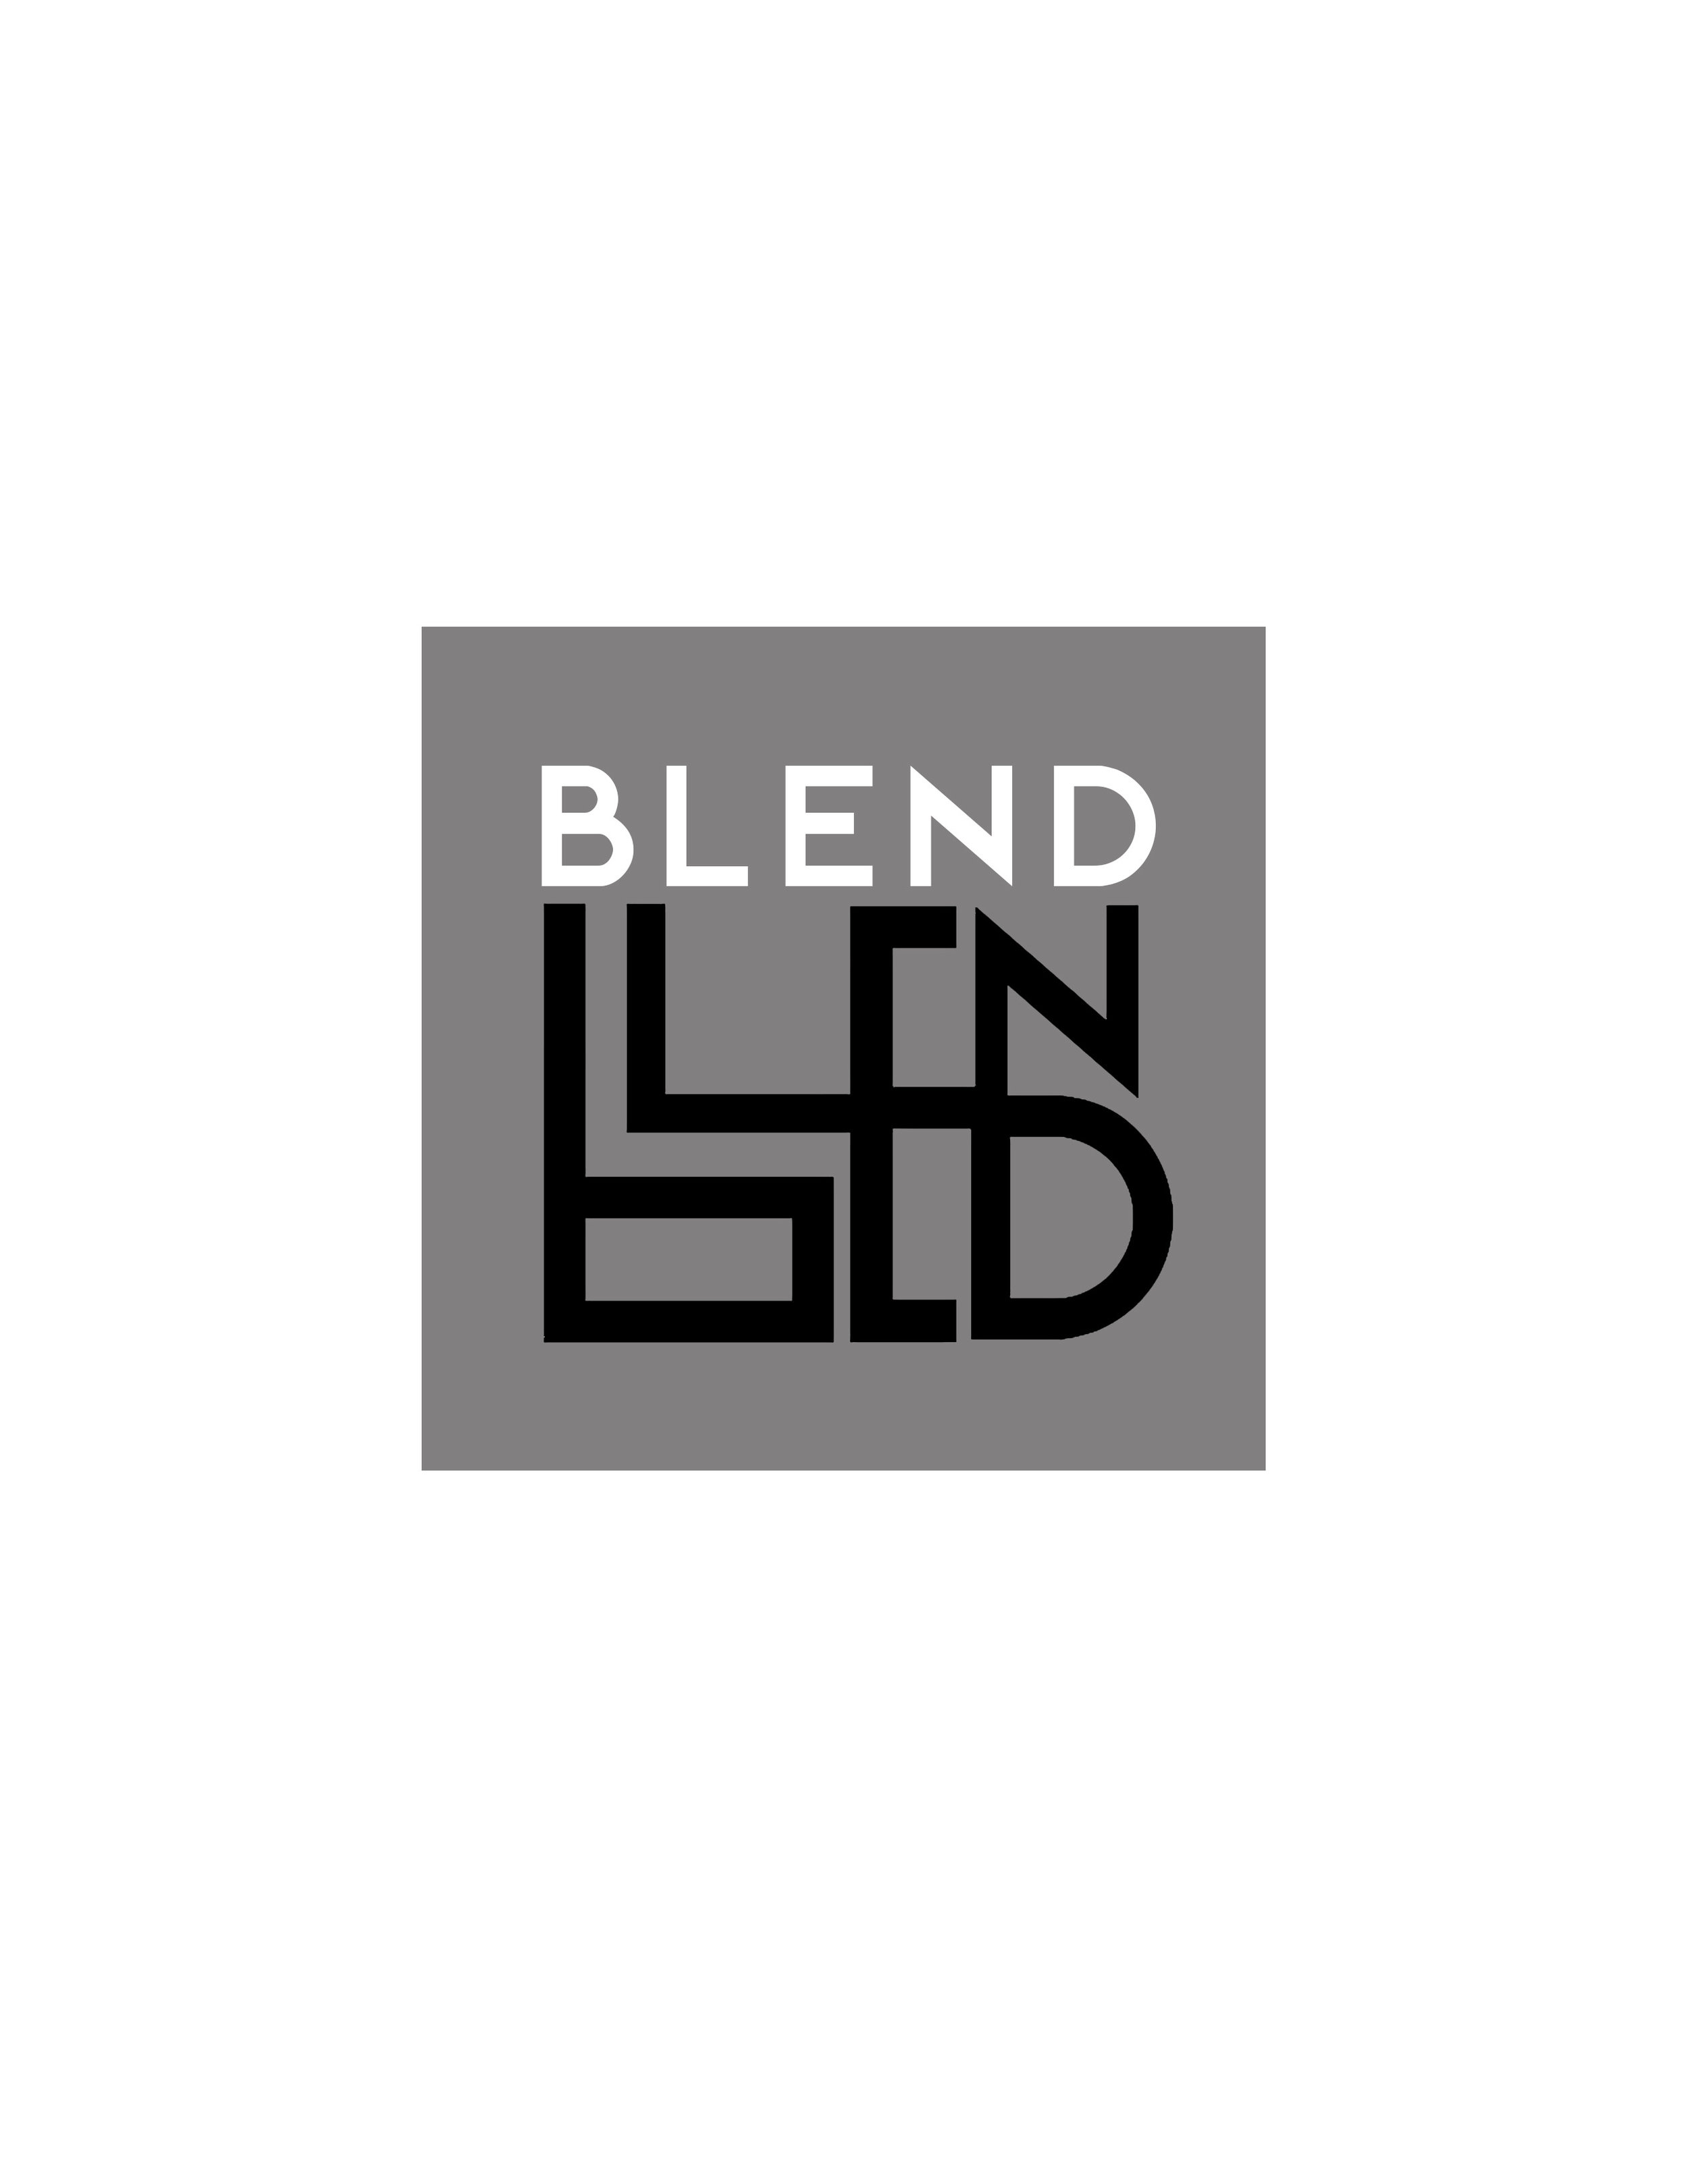 Blend Warehouse, 120 West St. John Street, Spartanburg, South Carolina By Appointment, only.